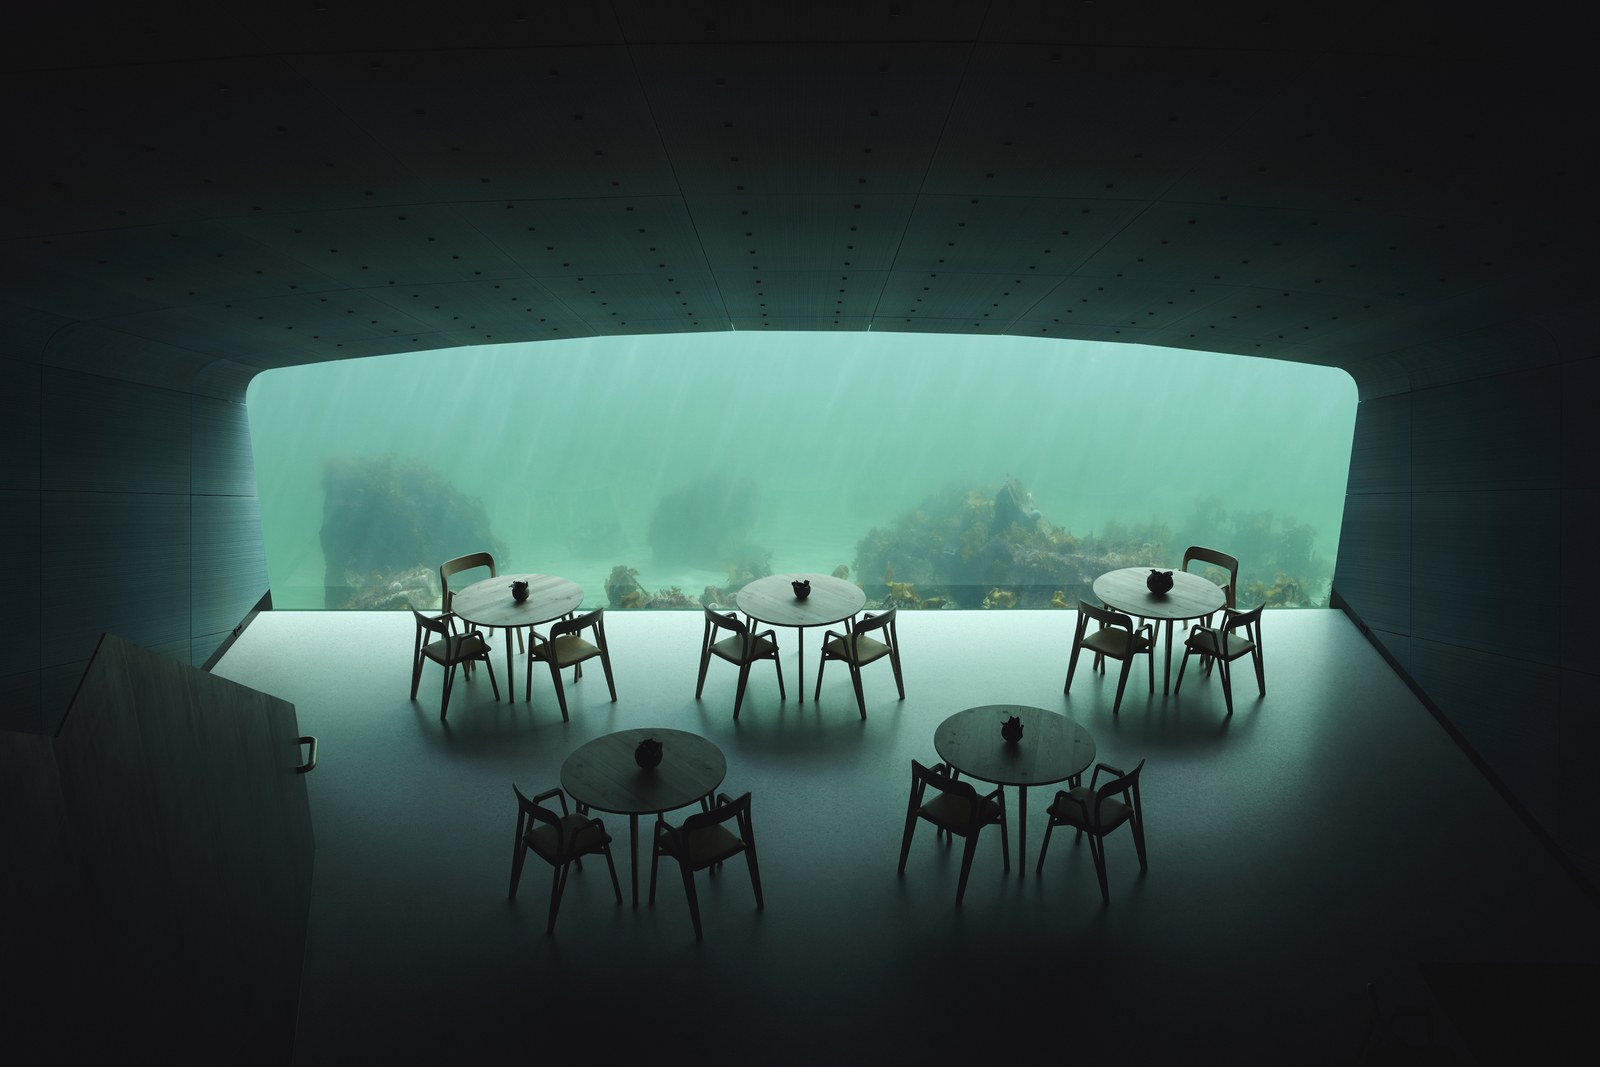 several tables with chairs around them